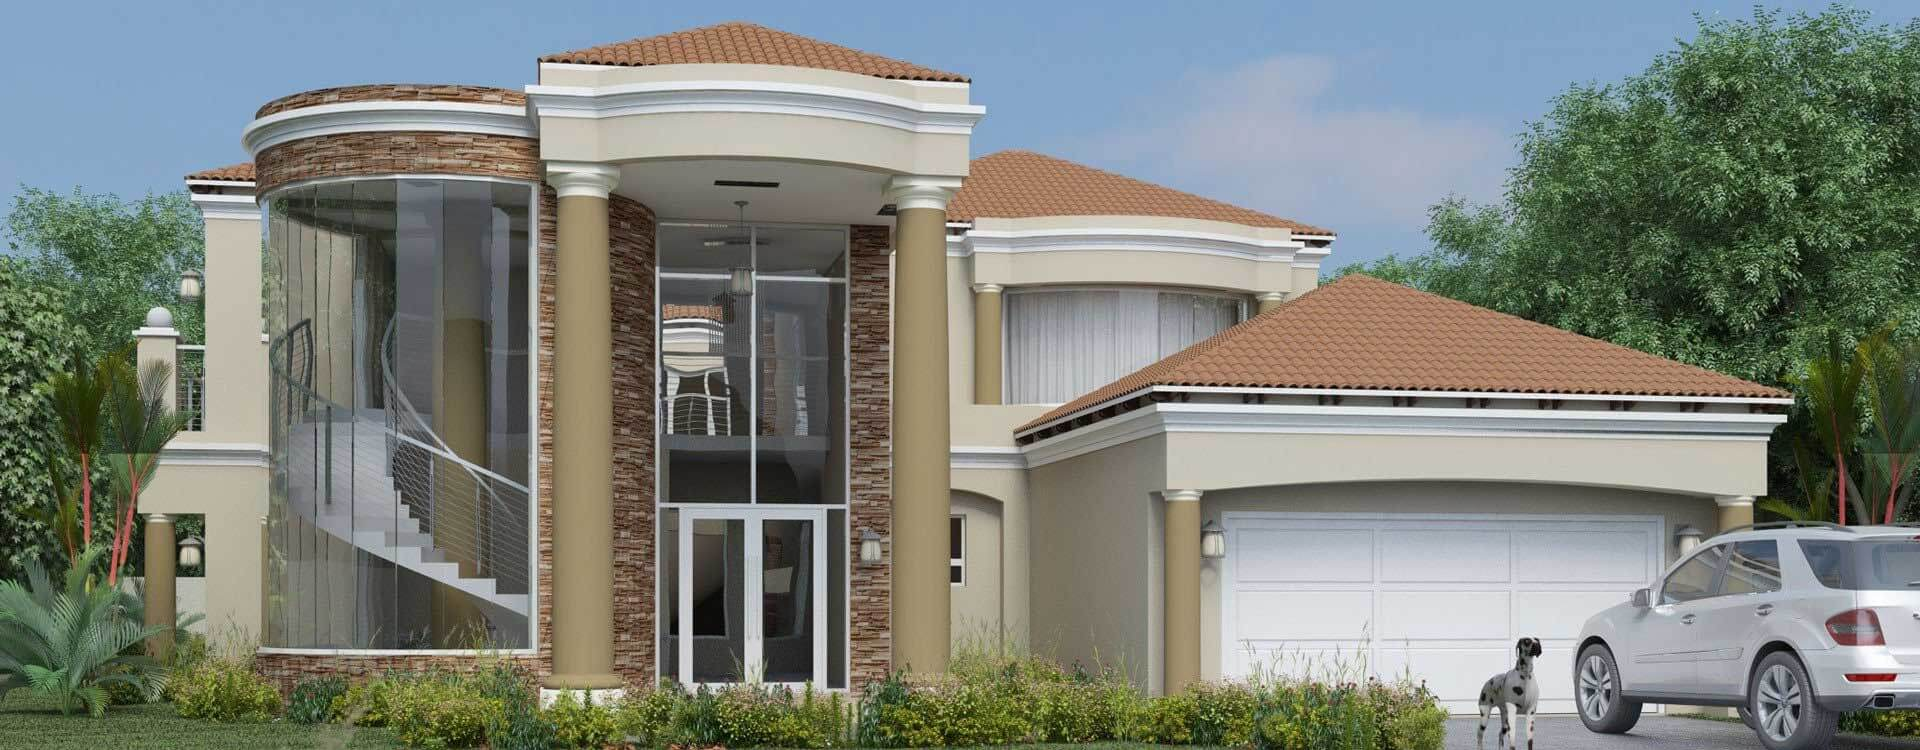 modern tuscan style house plans 4 bedroom double storey floor plans nethouseplans architectural